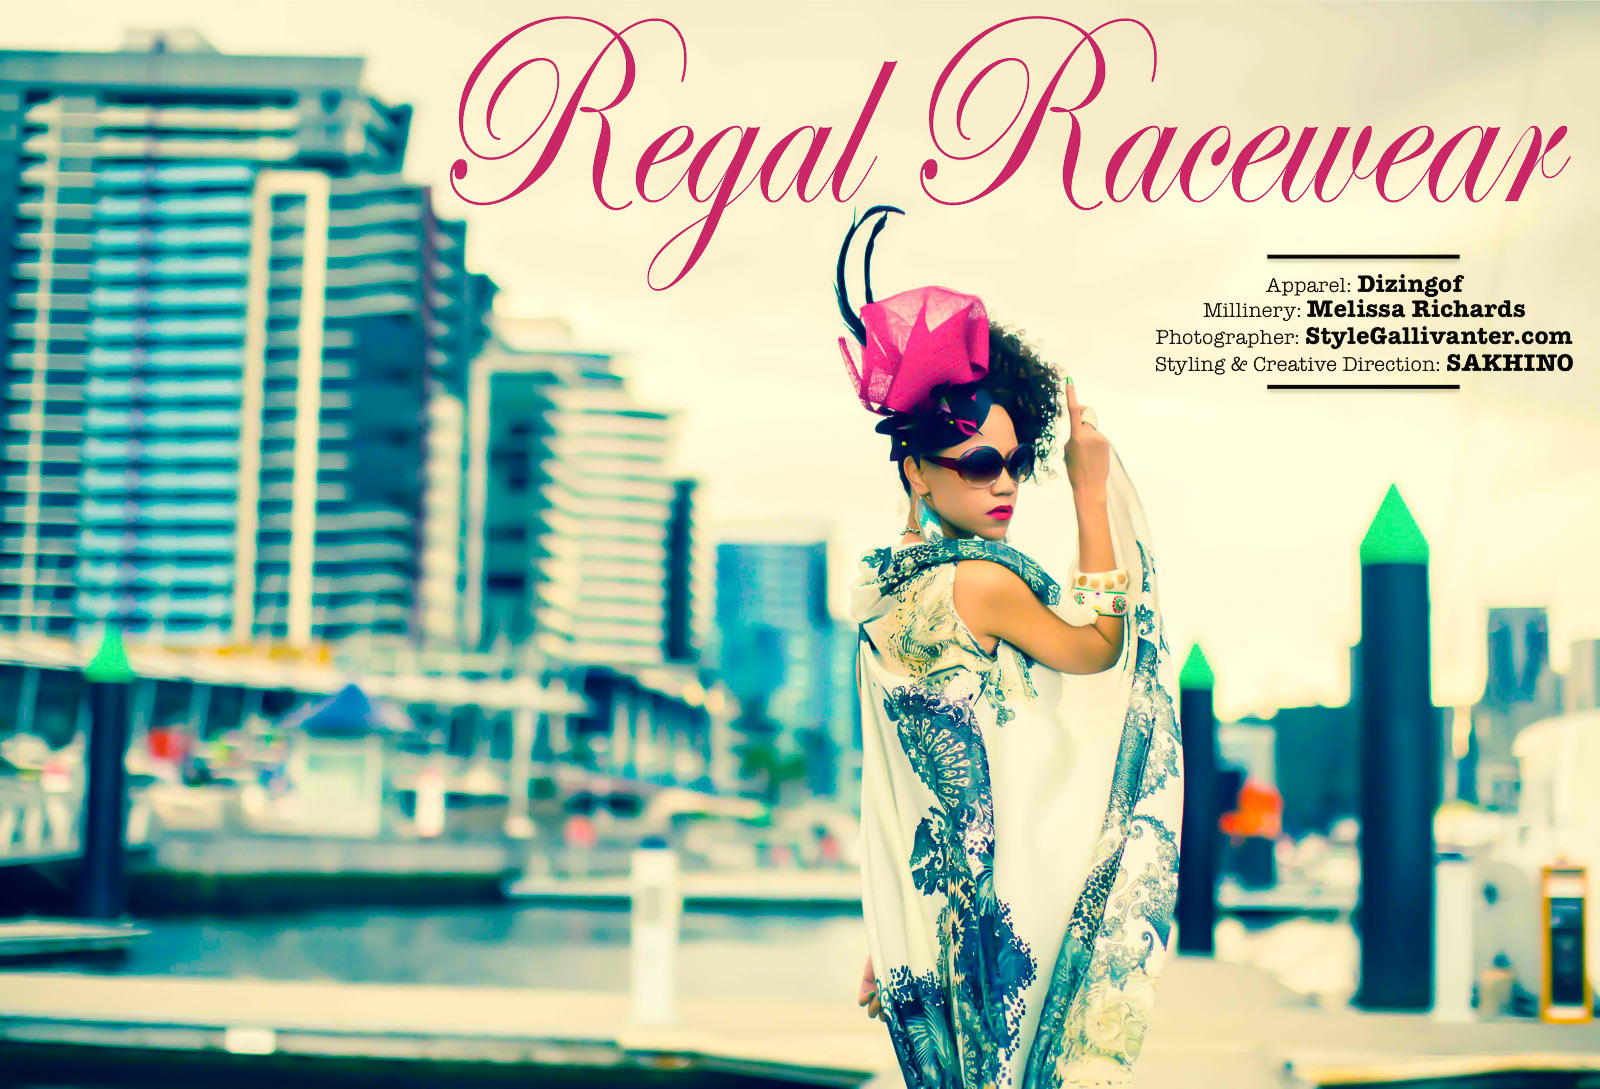 spring-racing-editorials-vogue_unique-racewear-looks_best-personal-stylist-melbourne_best-melbourne-blogger_best-looking-melbourne-blogger_spring-racing-fashion-editorial_emirates-melbourne-cup-carnival-2013